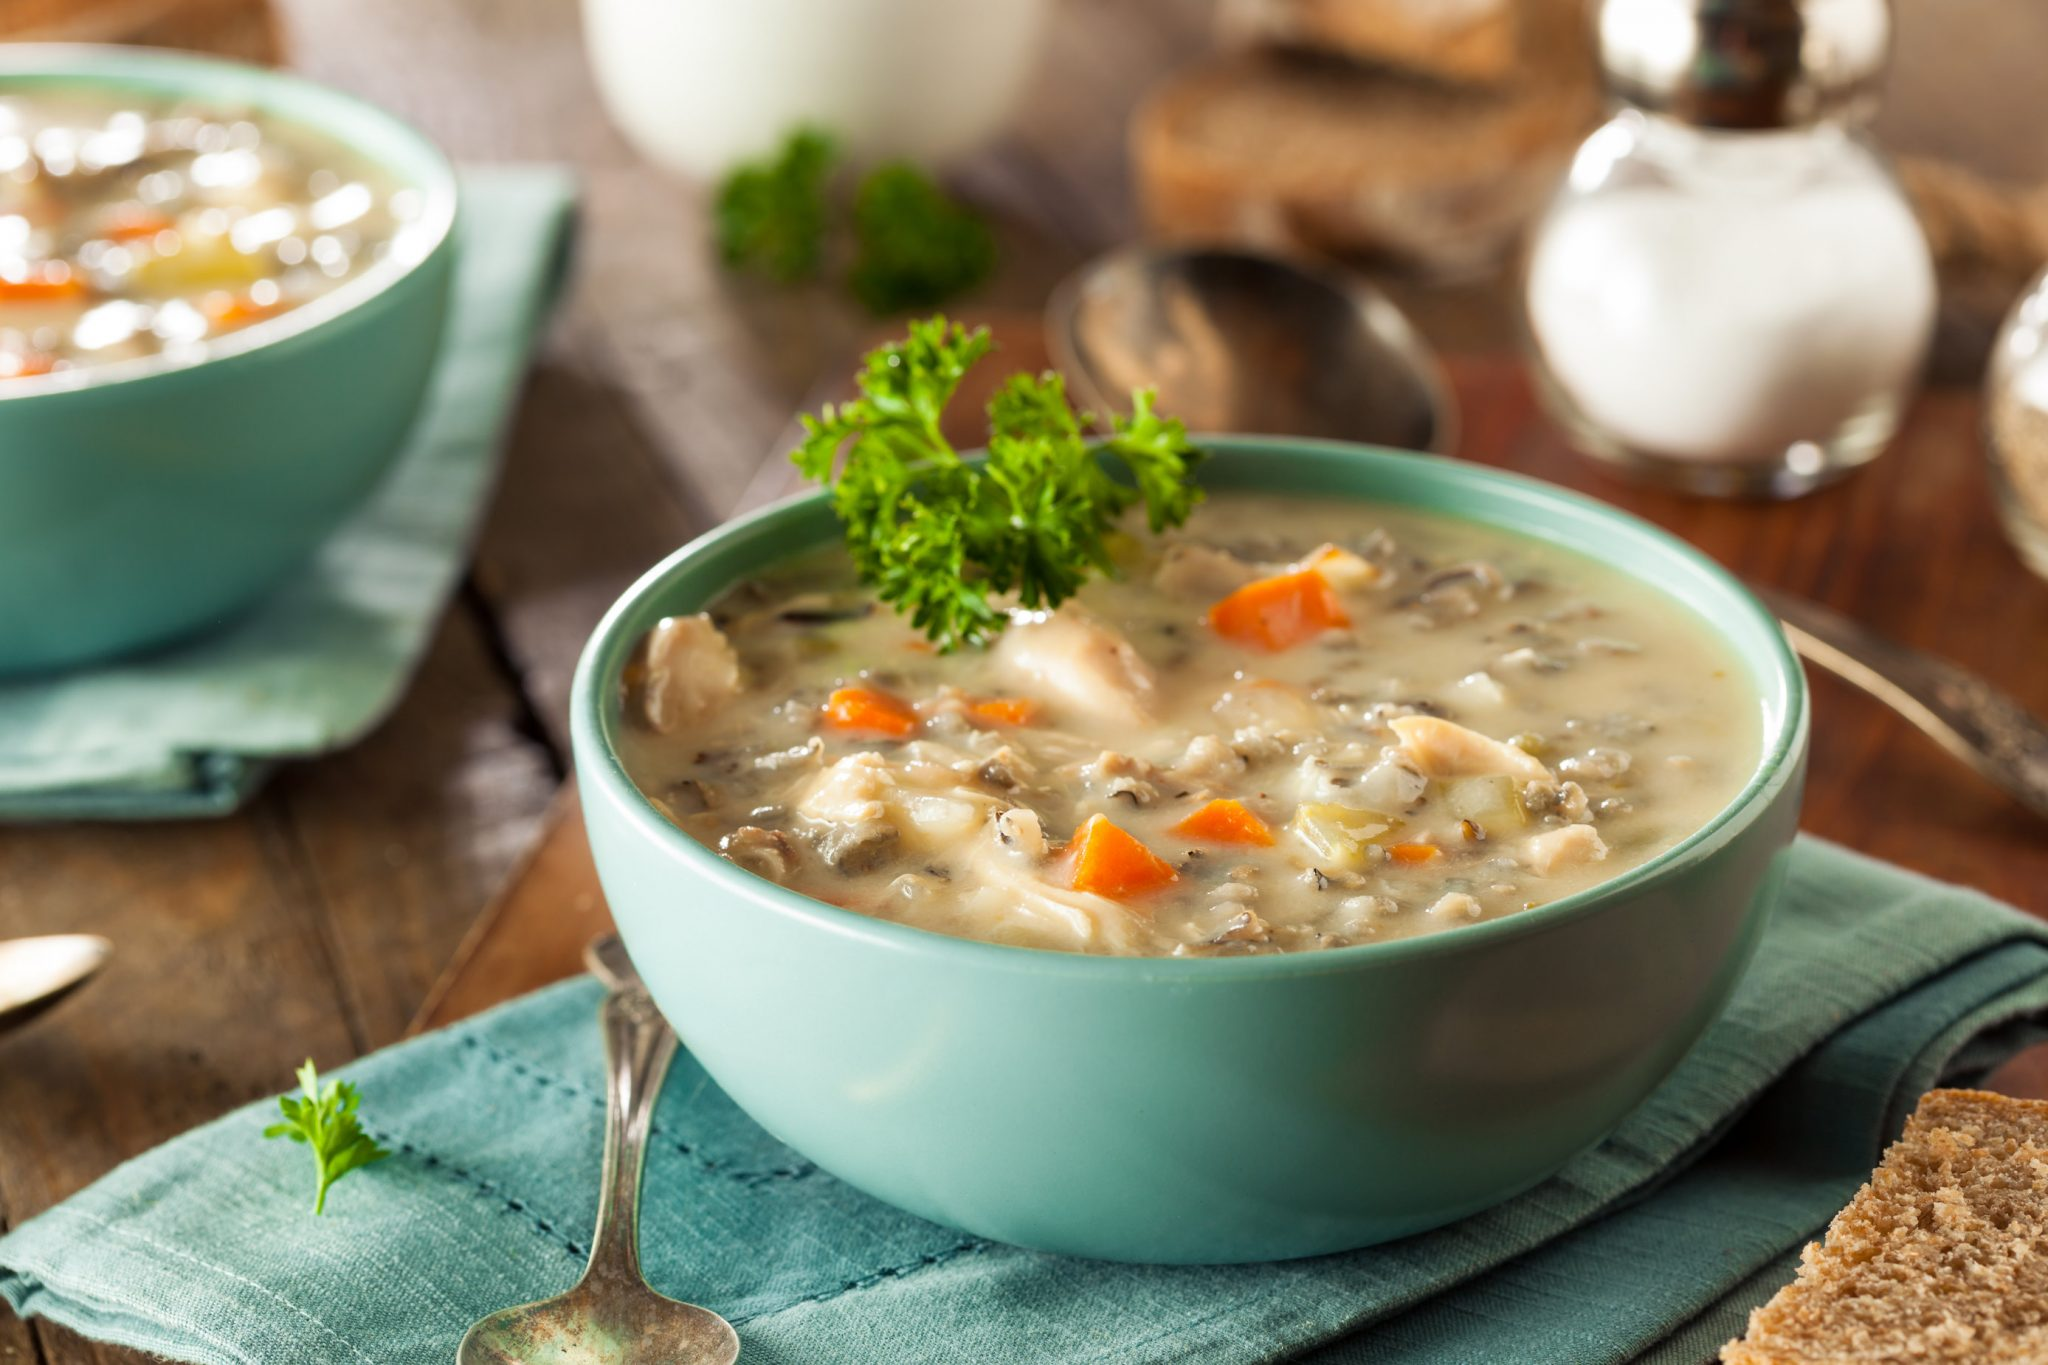 Eats Clean Creamy Turkey Wild Rice Soup